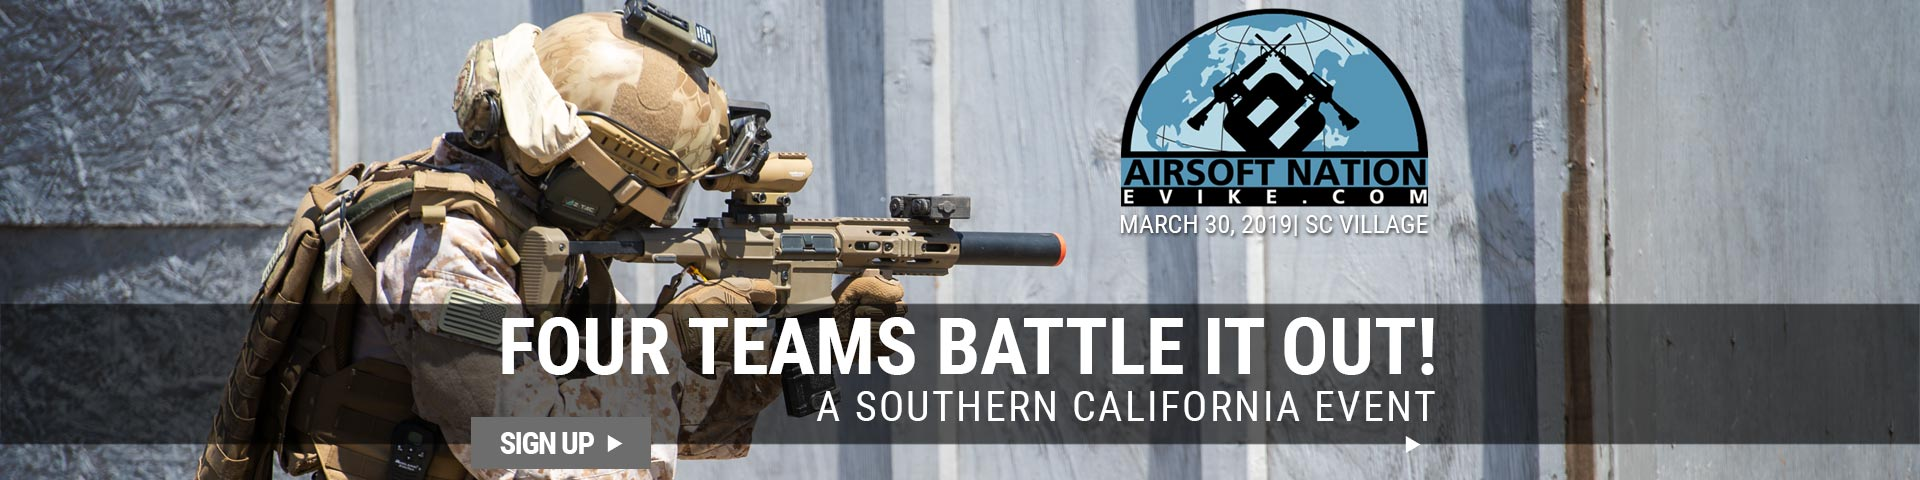 Airsoft Nation Event in Southern California